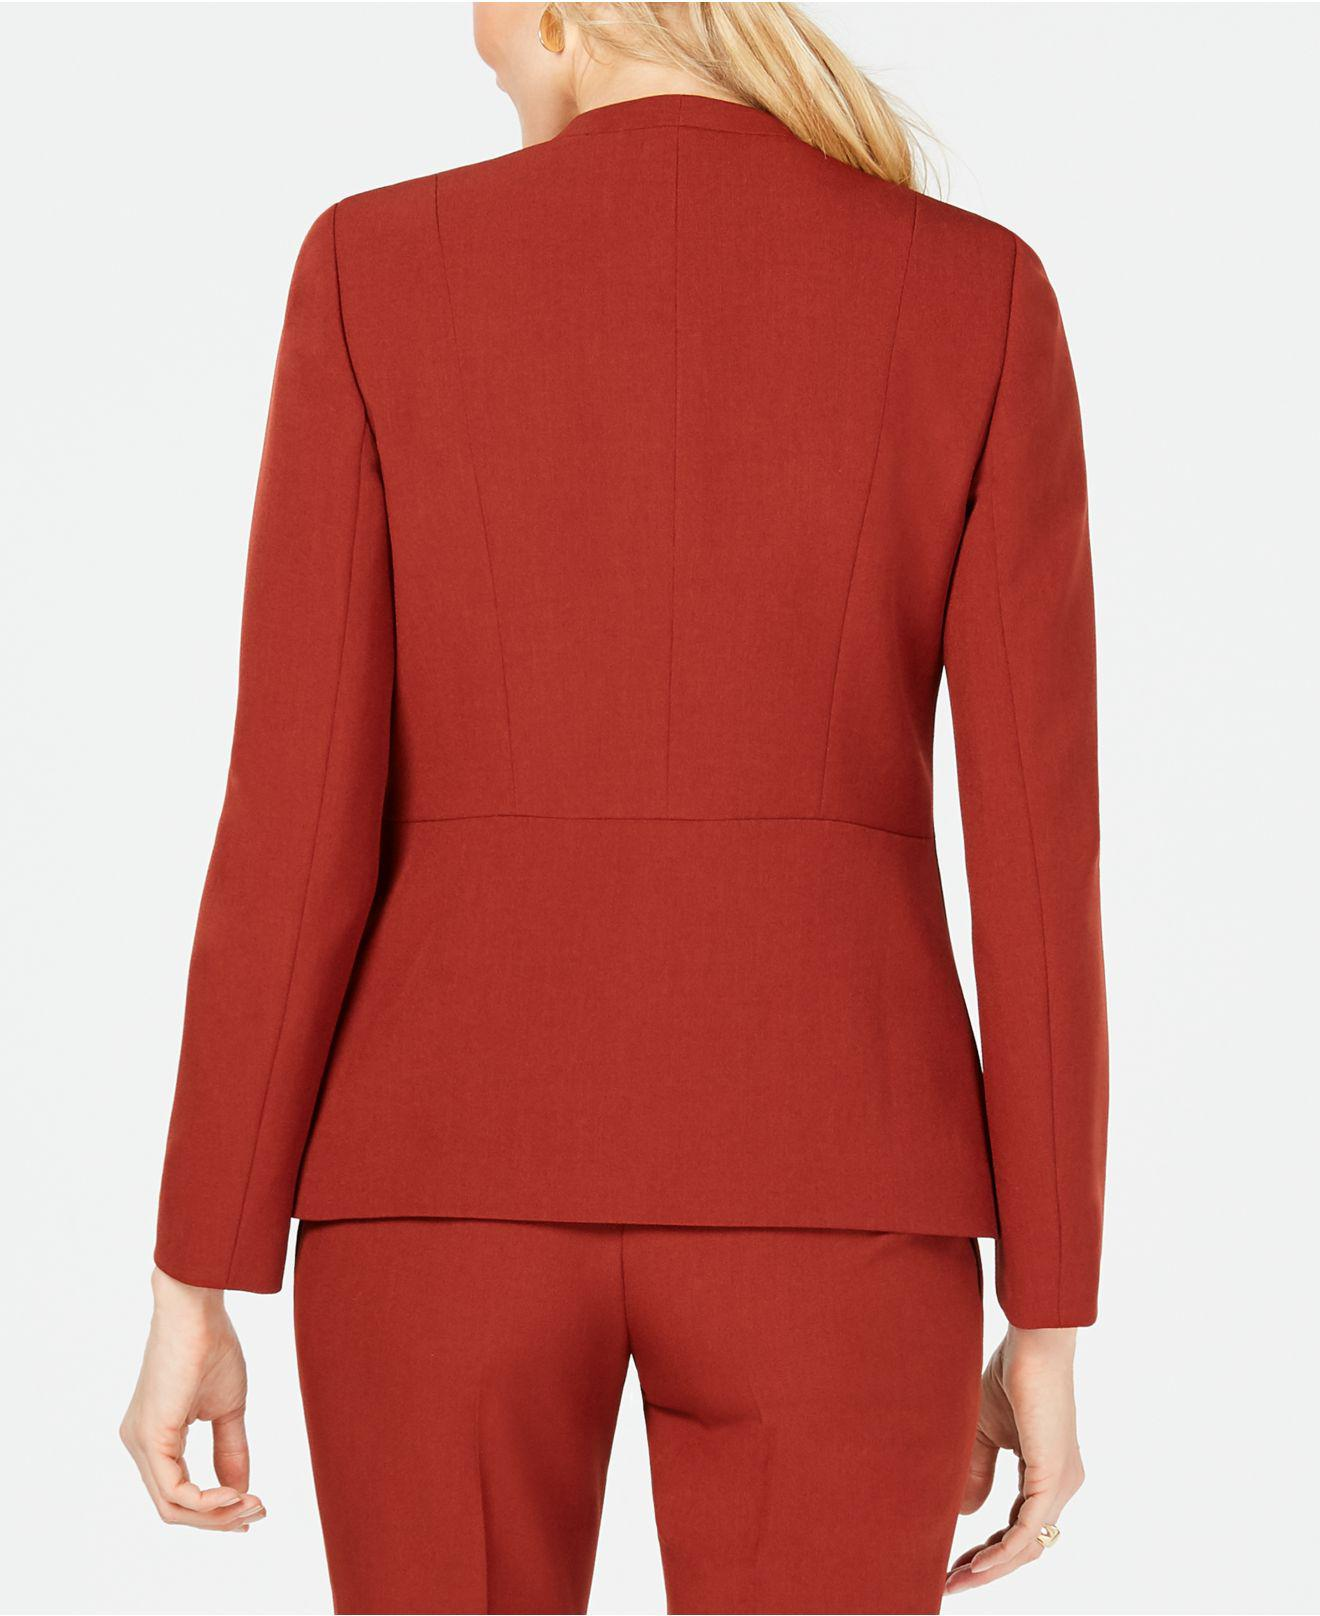 5f6f2ba6f4e Lyst - Kasper Stretch Crepe Blazer in Red - Save 23%